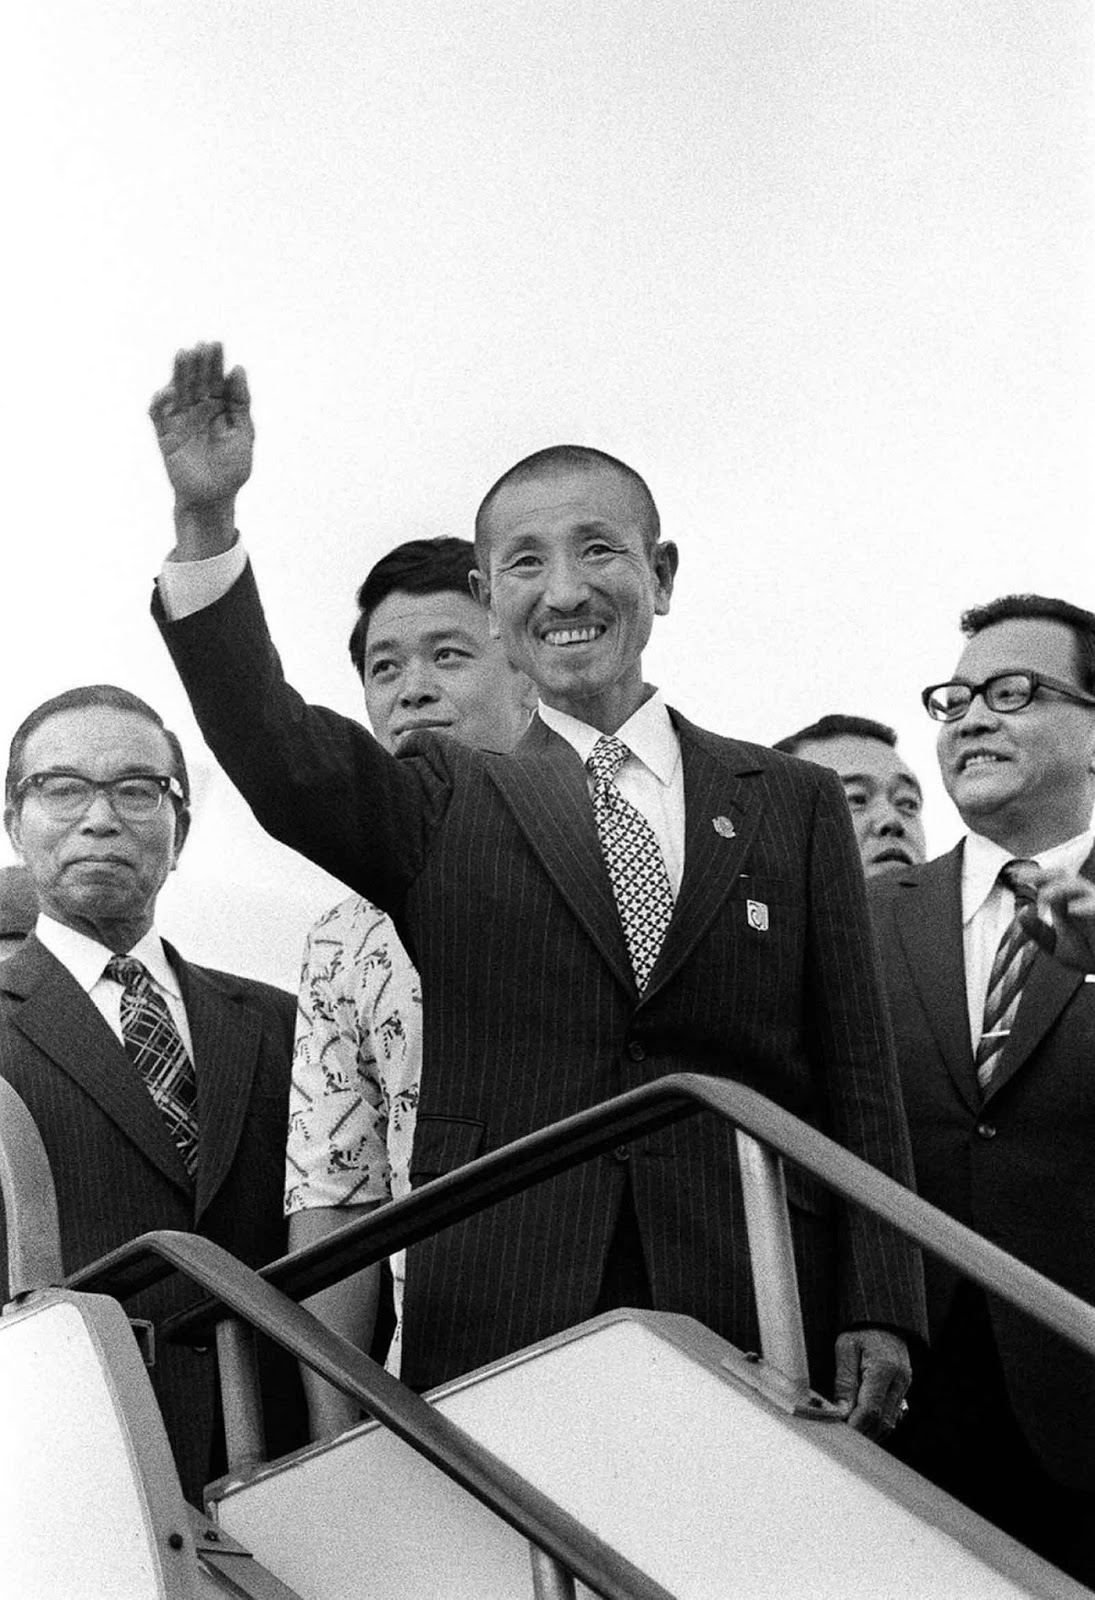 Onoda waves upon arriving back in Tokyo. March 12, 1974.